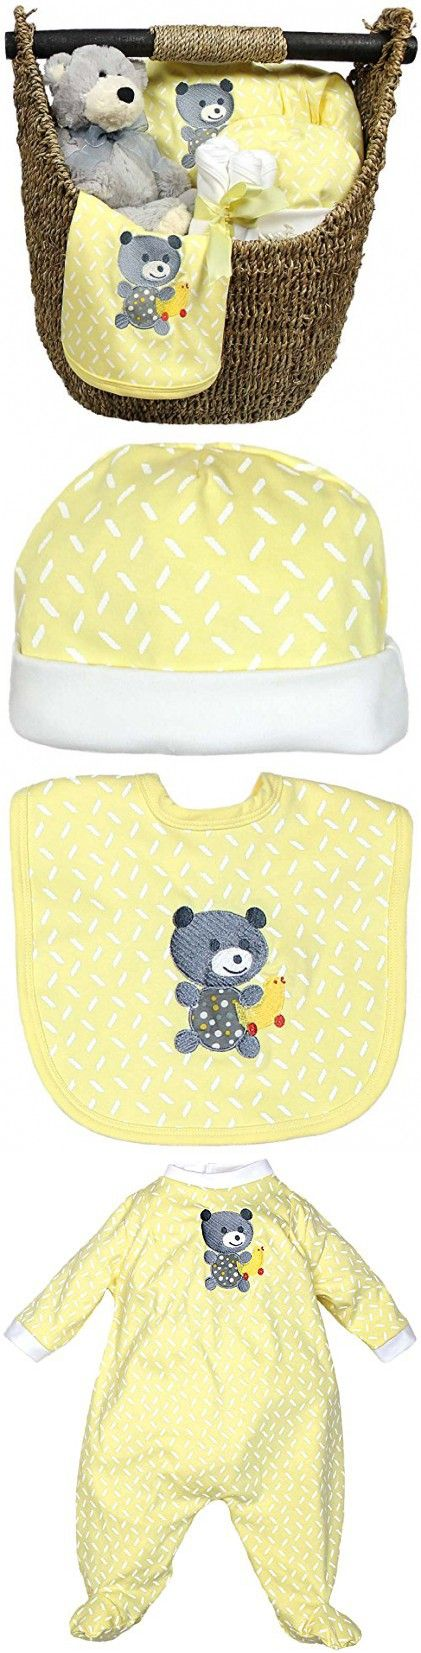 Raindrops Welcome Home 9-Piece Gift Set, Yellow, 3-6 Months